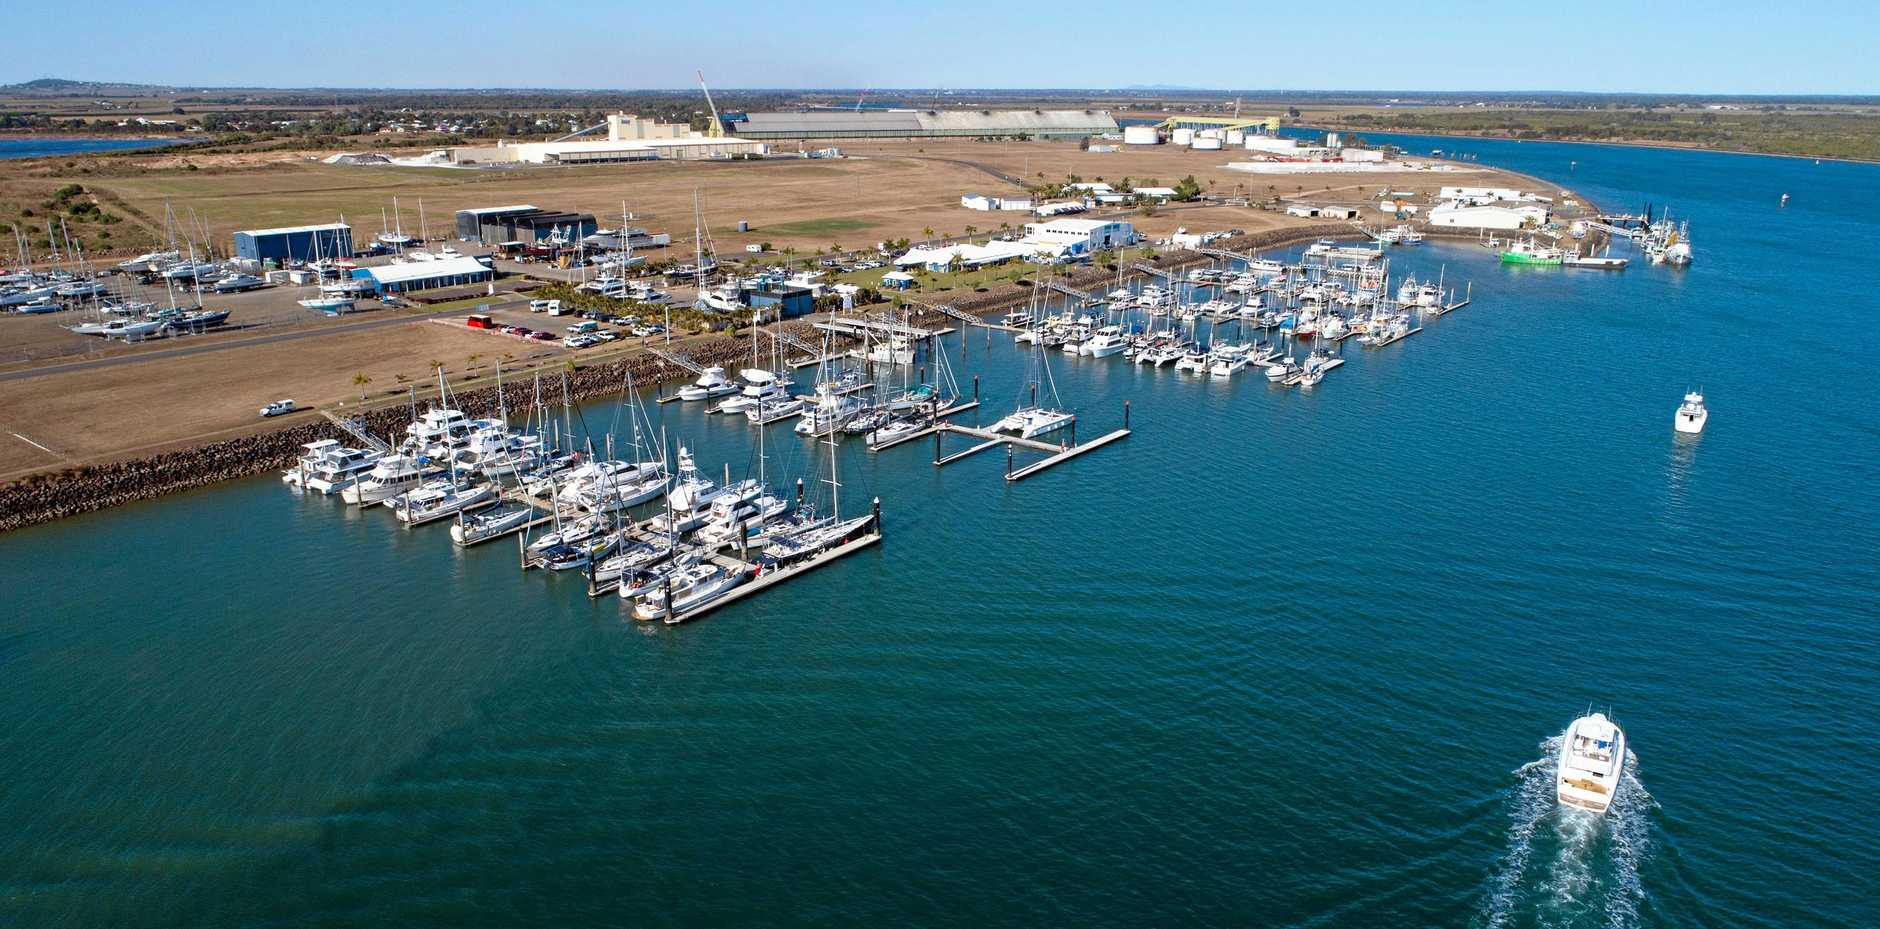 The Port of Bundaberg continues to provide a vital link for the region's industry.